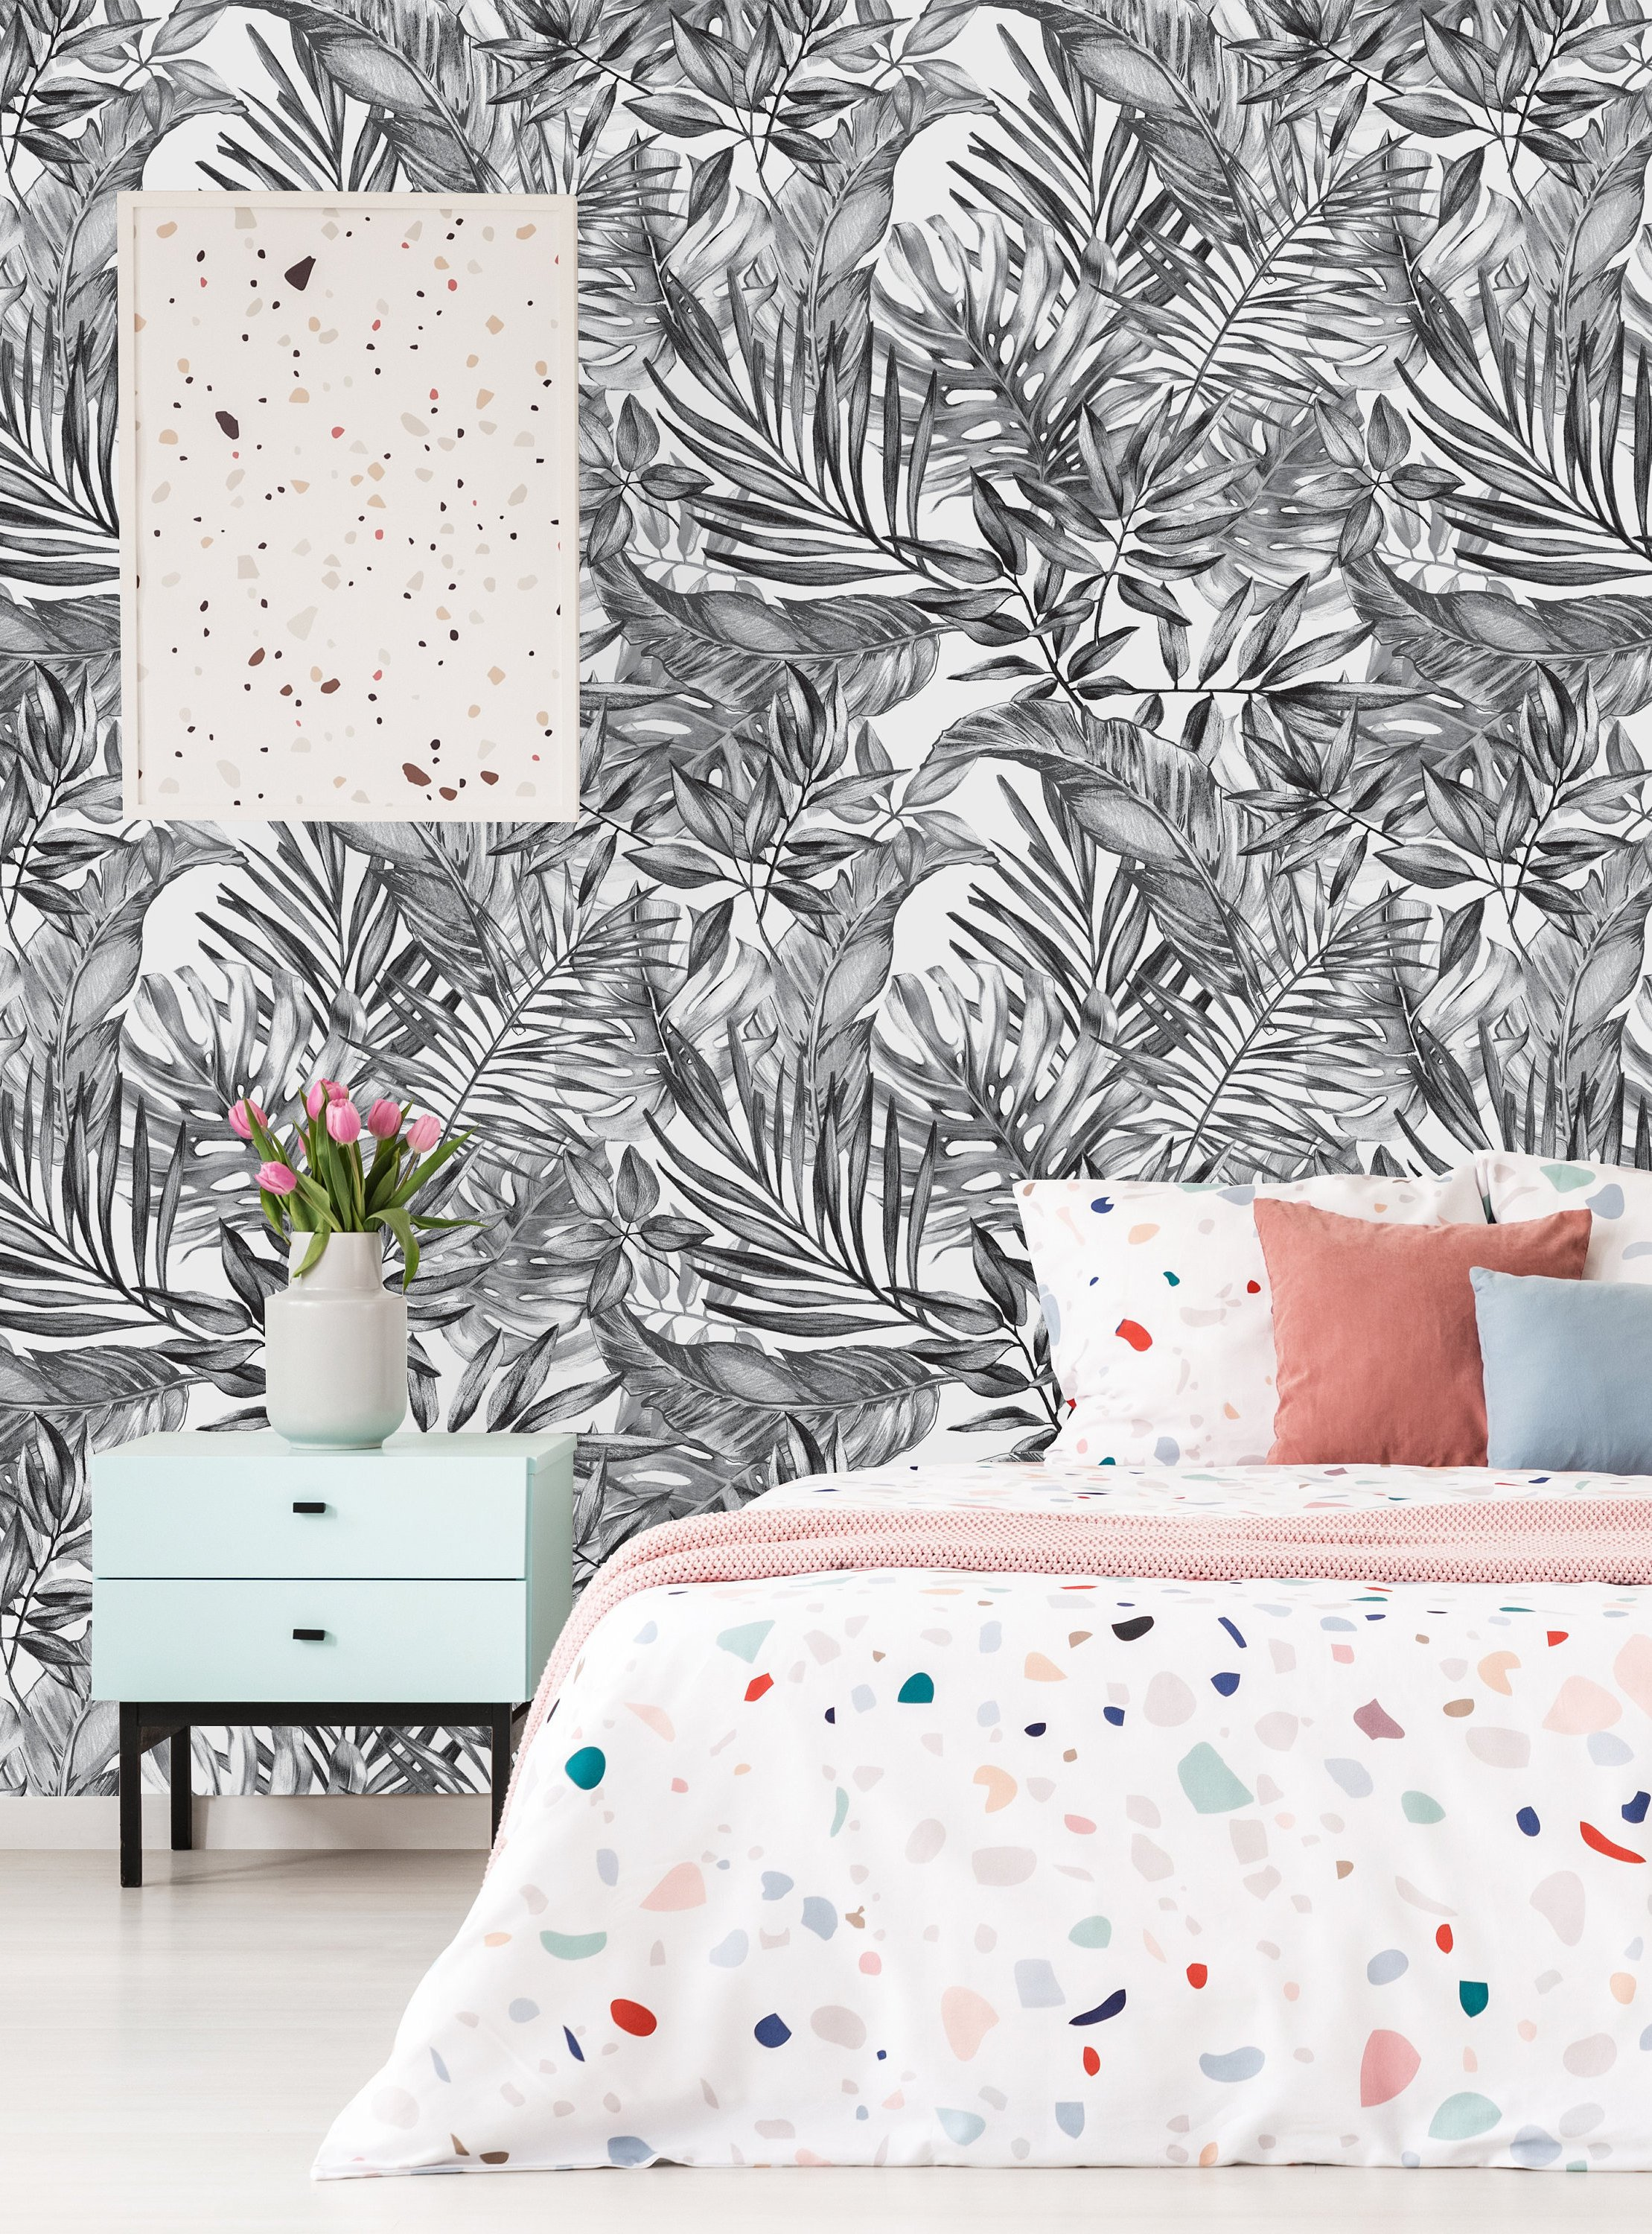 Removable Wallpaper Self Adhesive Wallpaper Gray Tropical Etsy 2219x3000